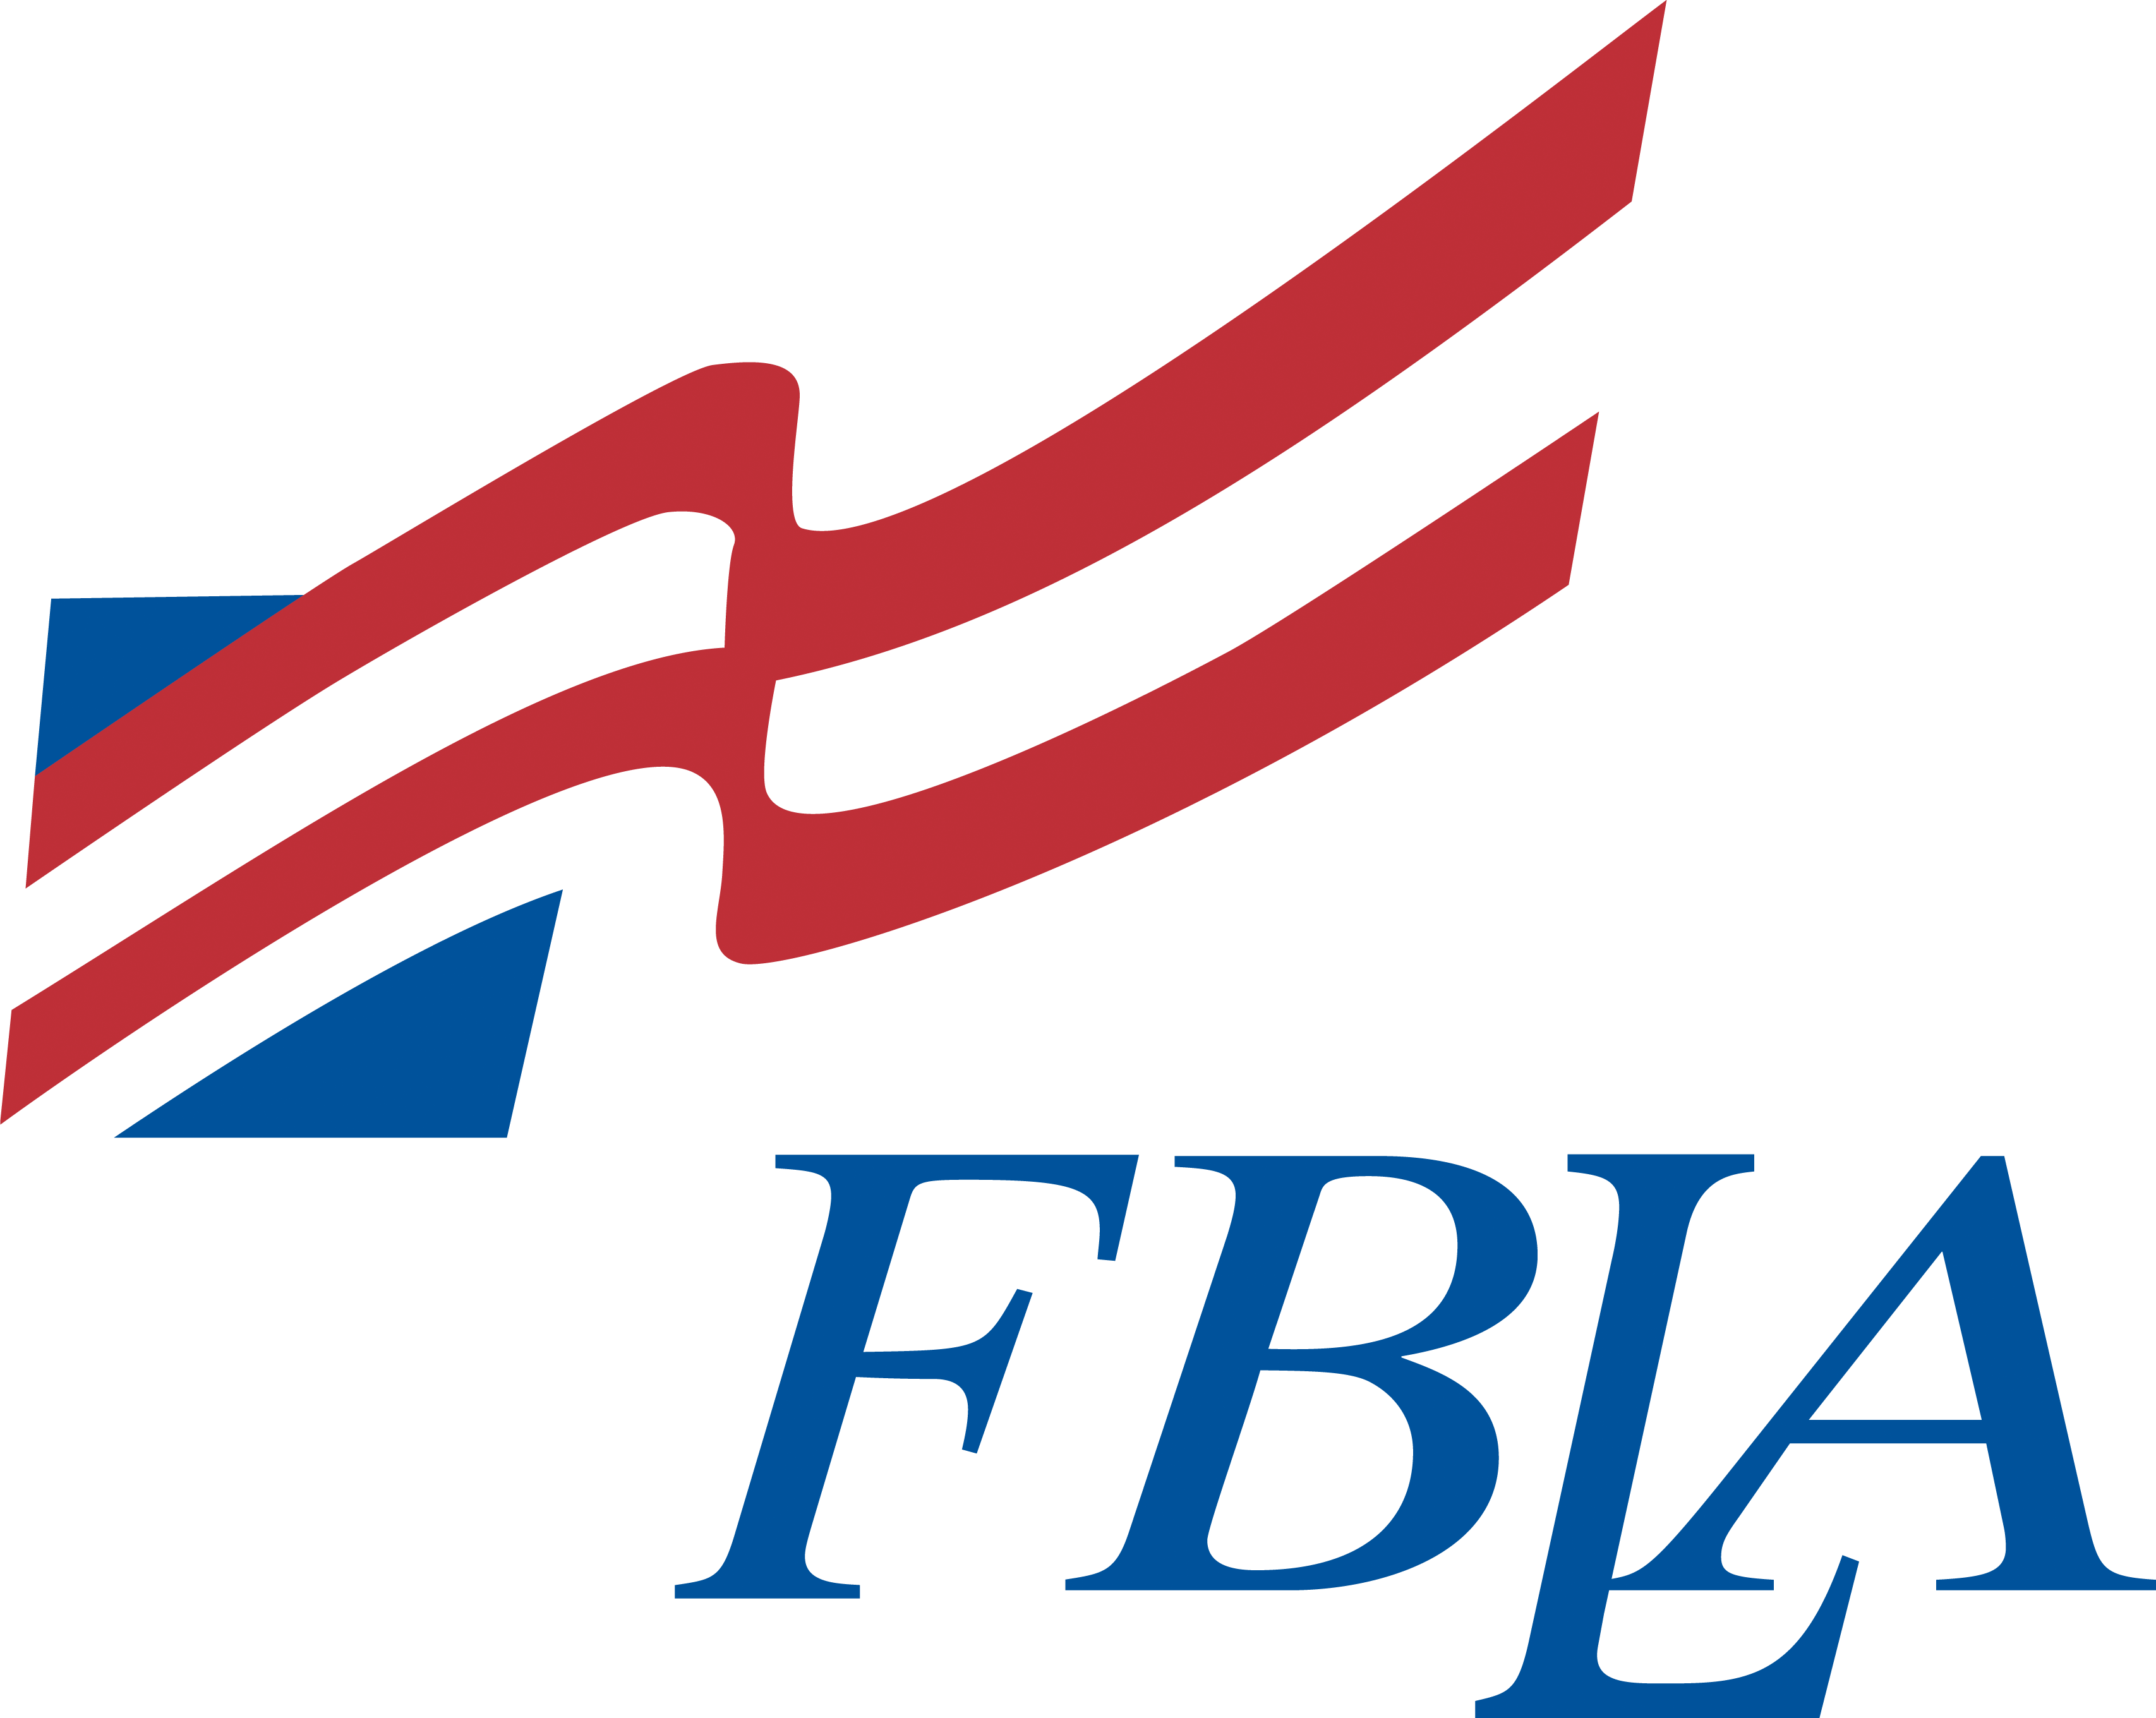 Download FBLA-PBL Logos & Images - Official